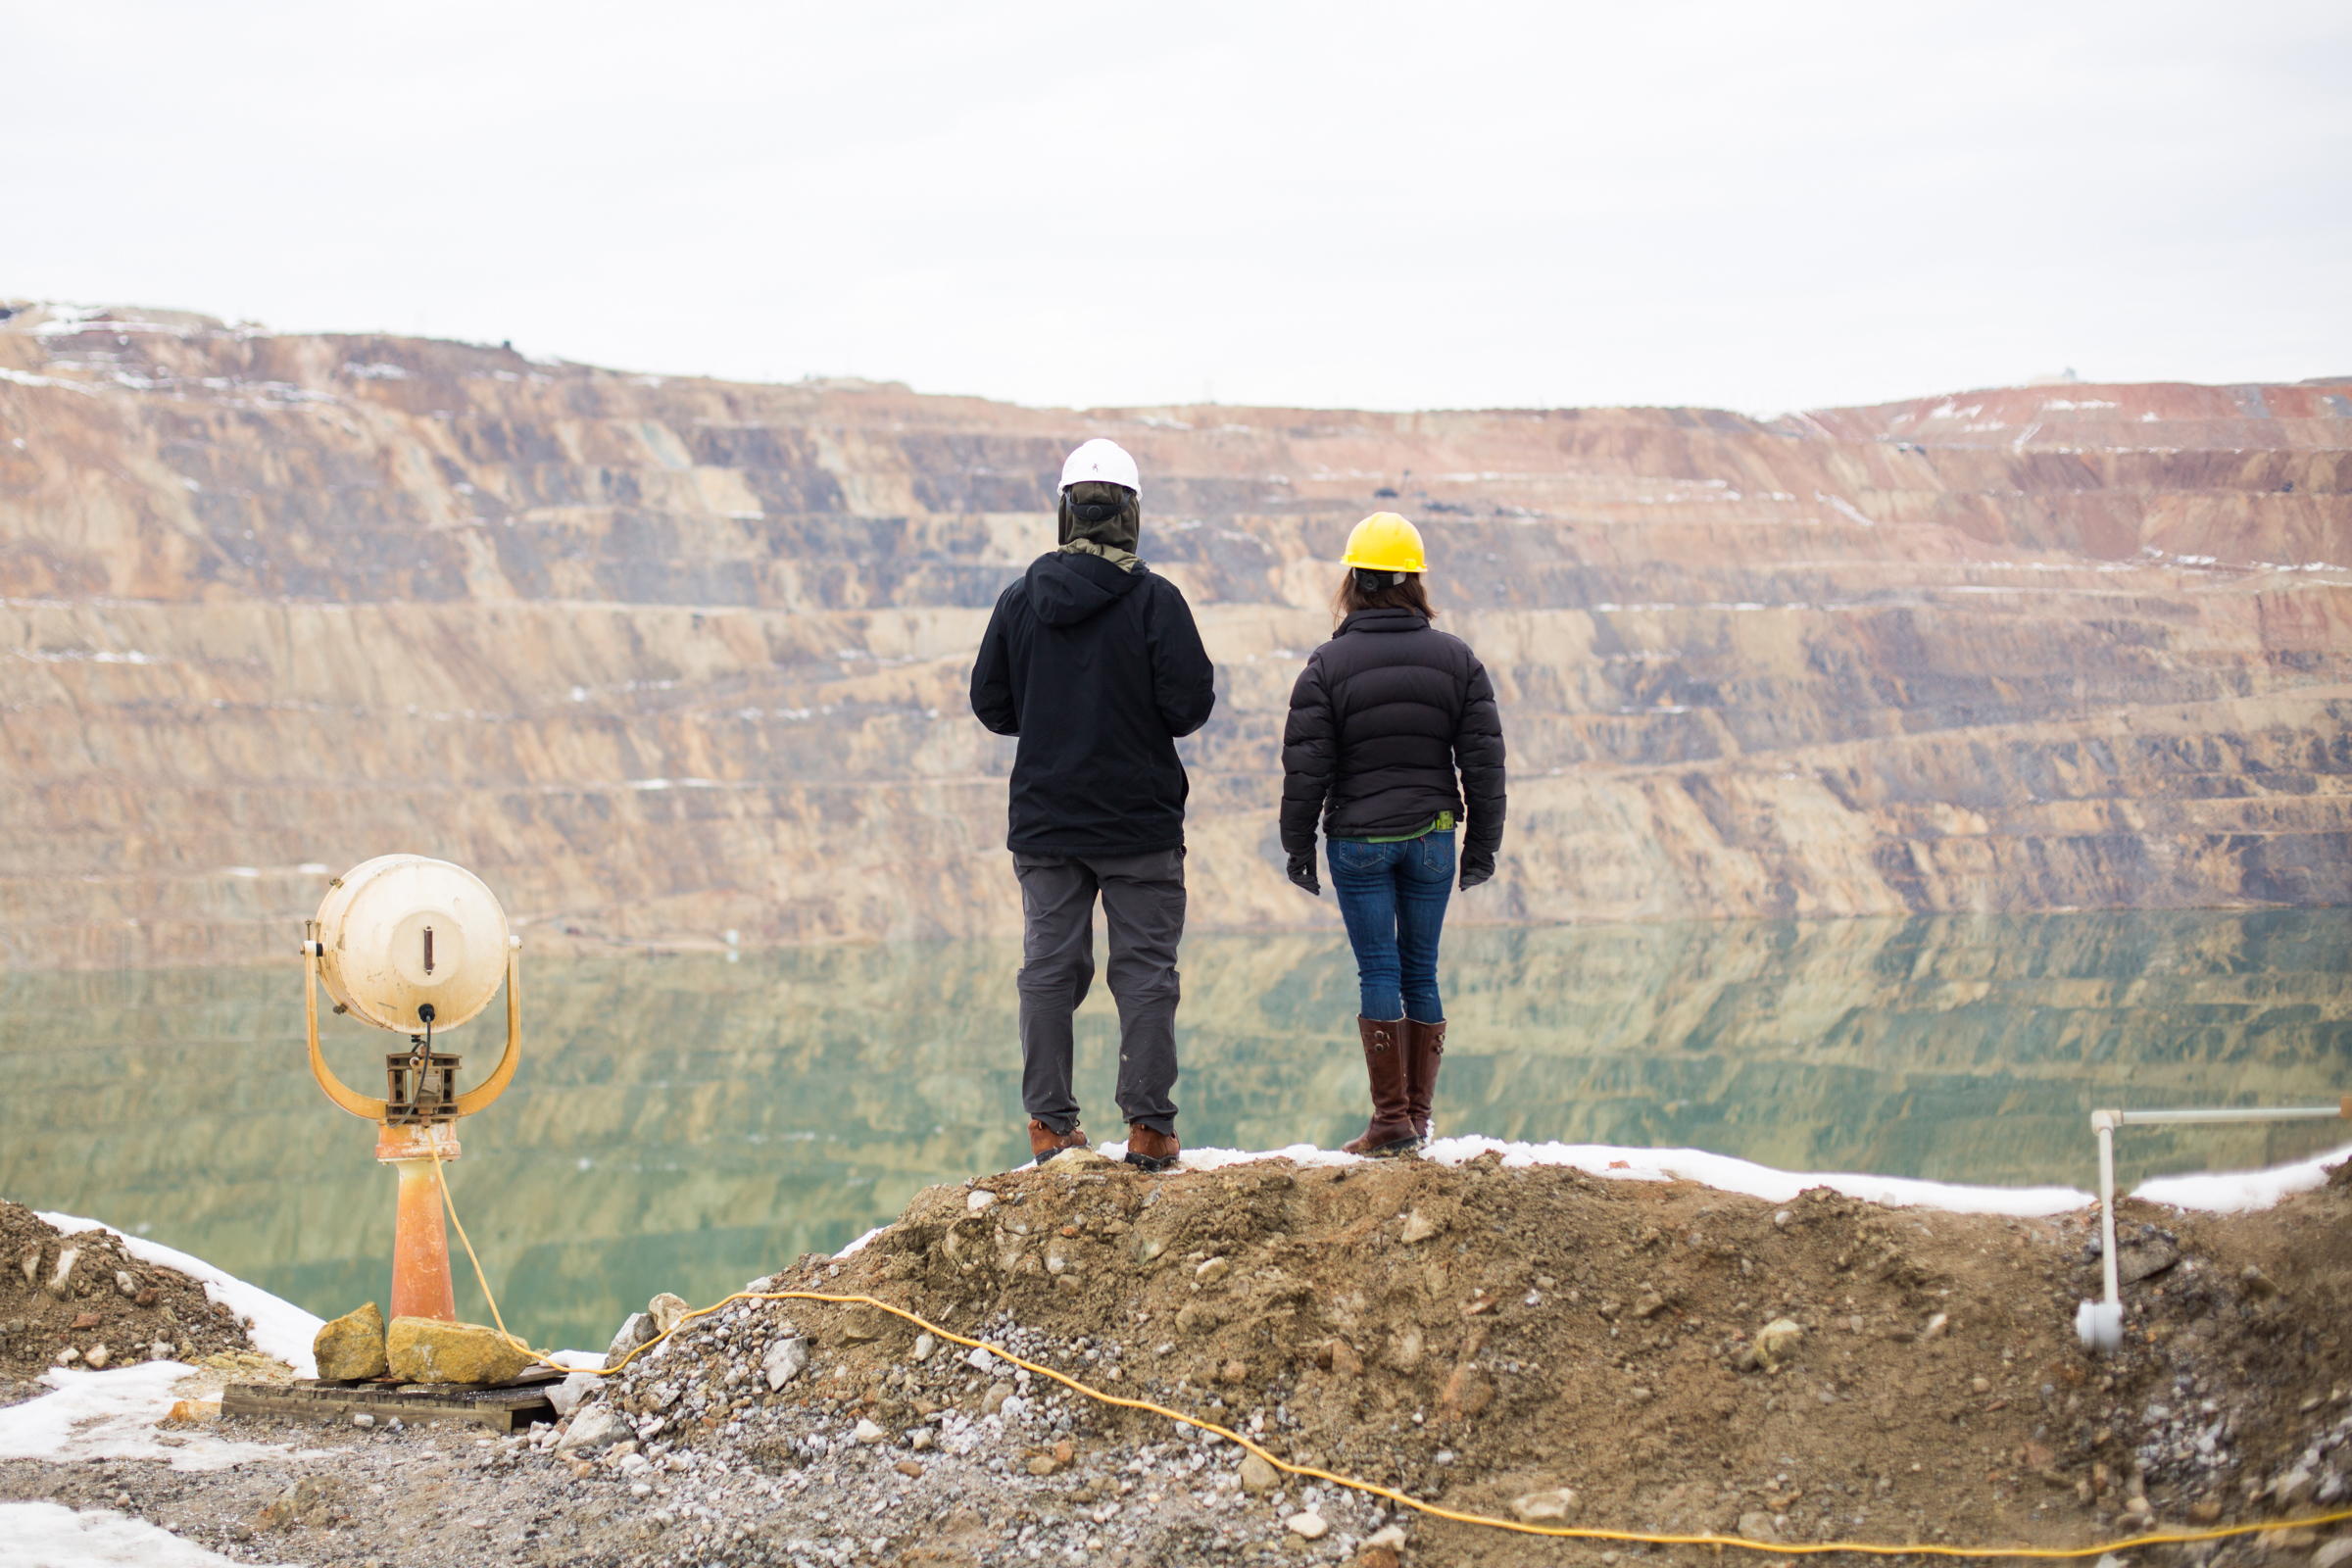 Stella Capoccia (right) and Mark Mariano Jr. look out over the pit. To their left sits a searchlight that was formerly installed in a prison and is now used to spotlight birds at night. Celia Talbot Tobin